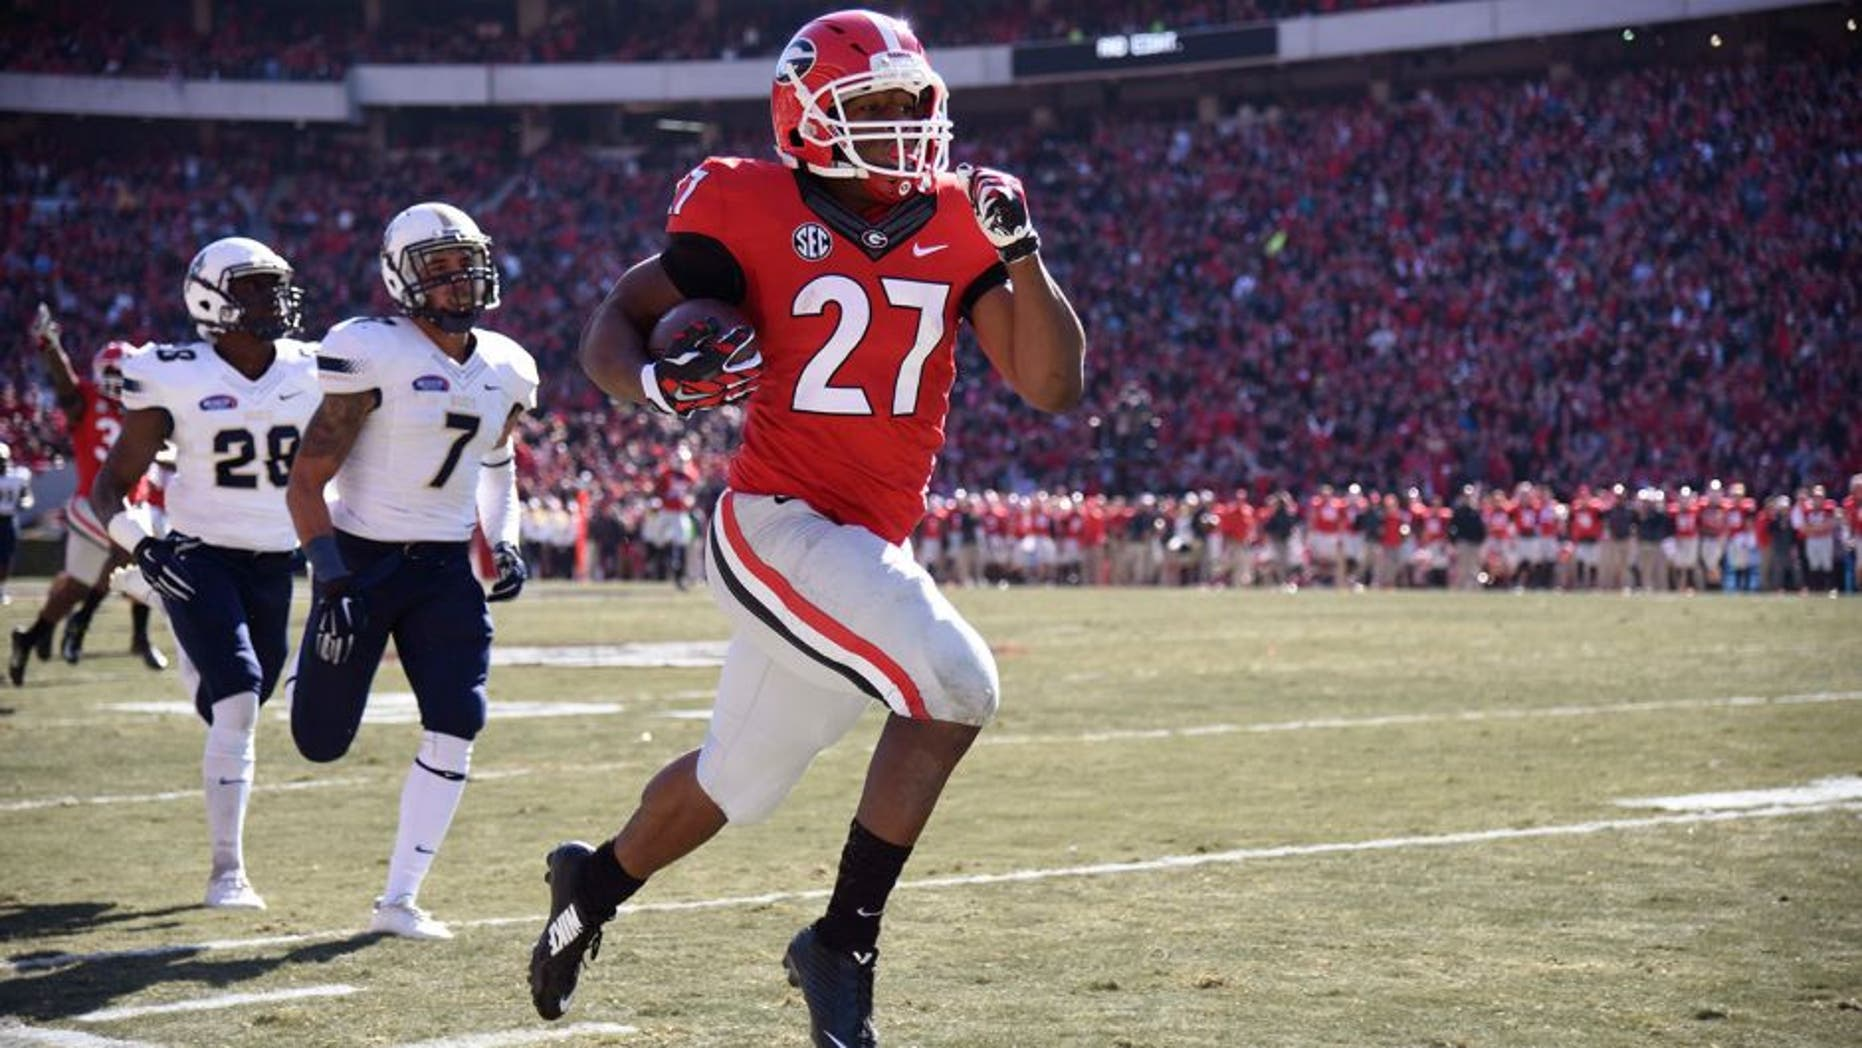 Nov 22, 2014; Athens, GA, USA; Georgia Bulldogs running back Nick Chubb (27) runs 83 yards for a touchdown against the Charleston Southern Buccaneers during the first quarter at Sanford Stadium. Mandatory Credit: Dale Zanine-USA TODAY Sports